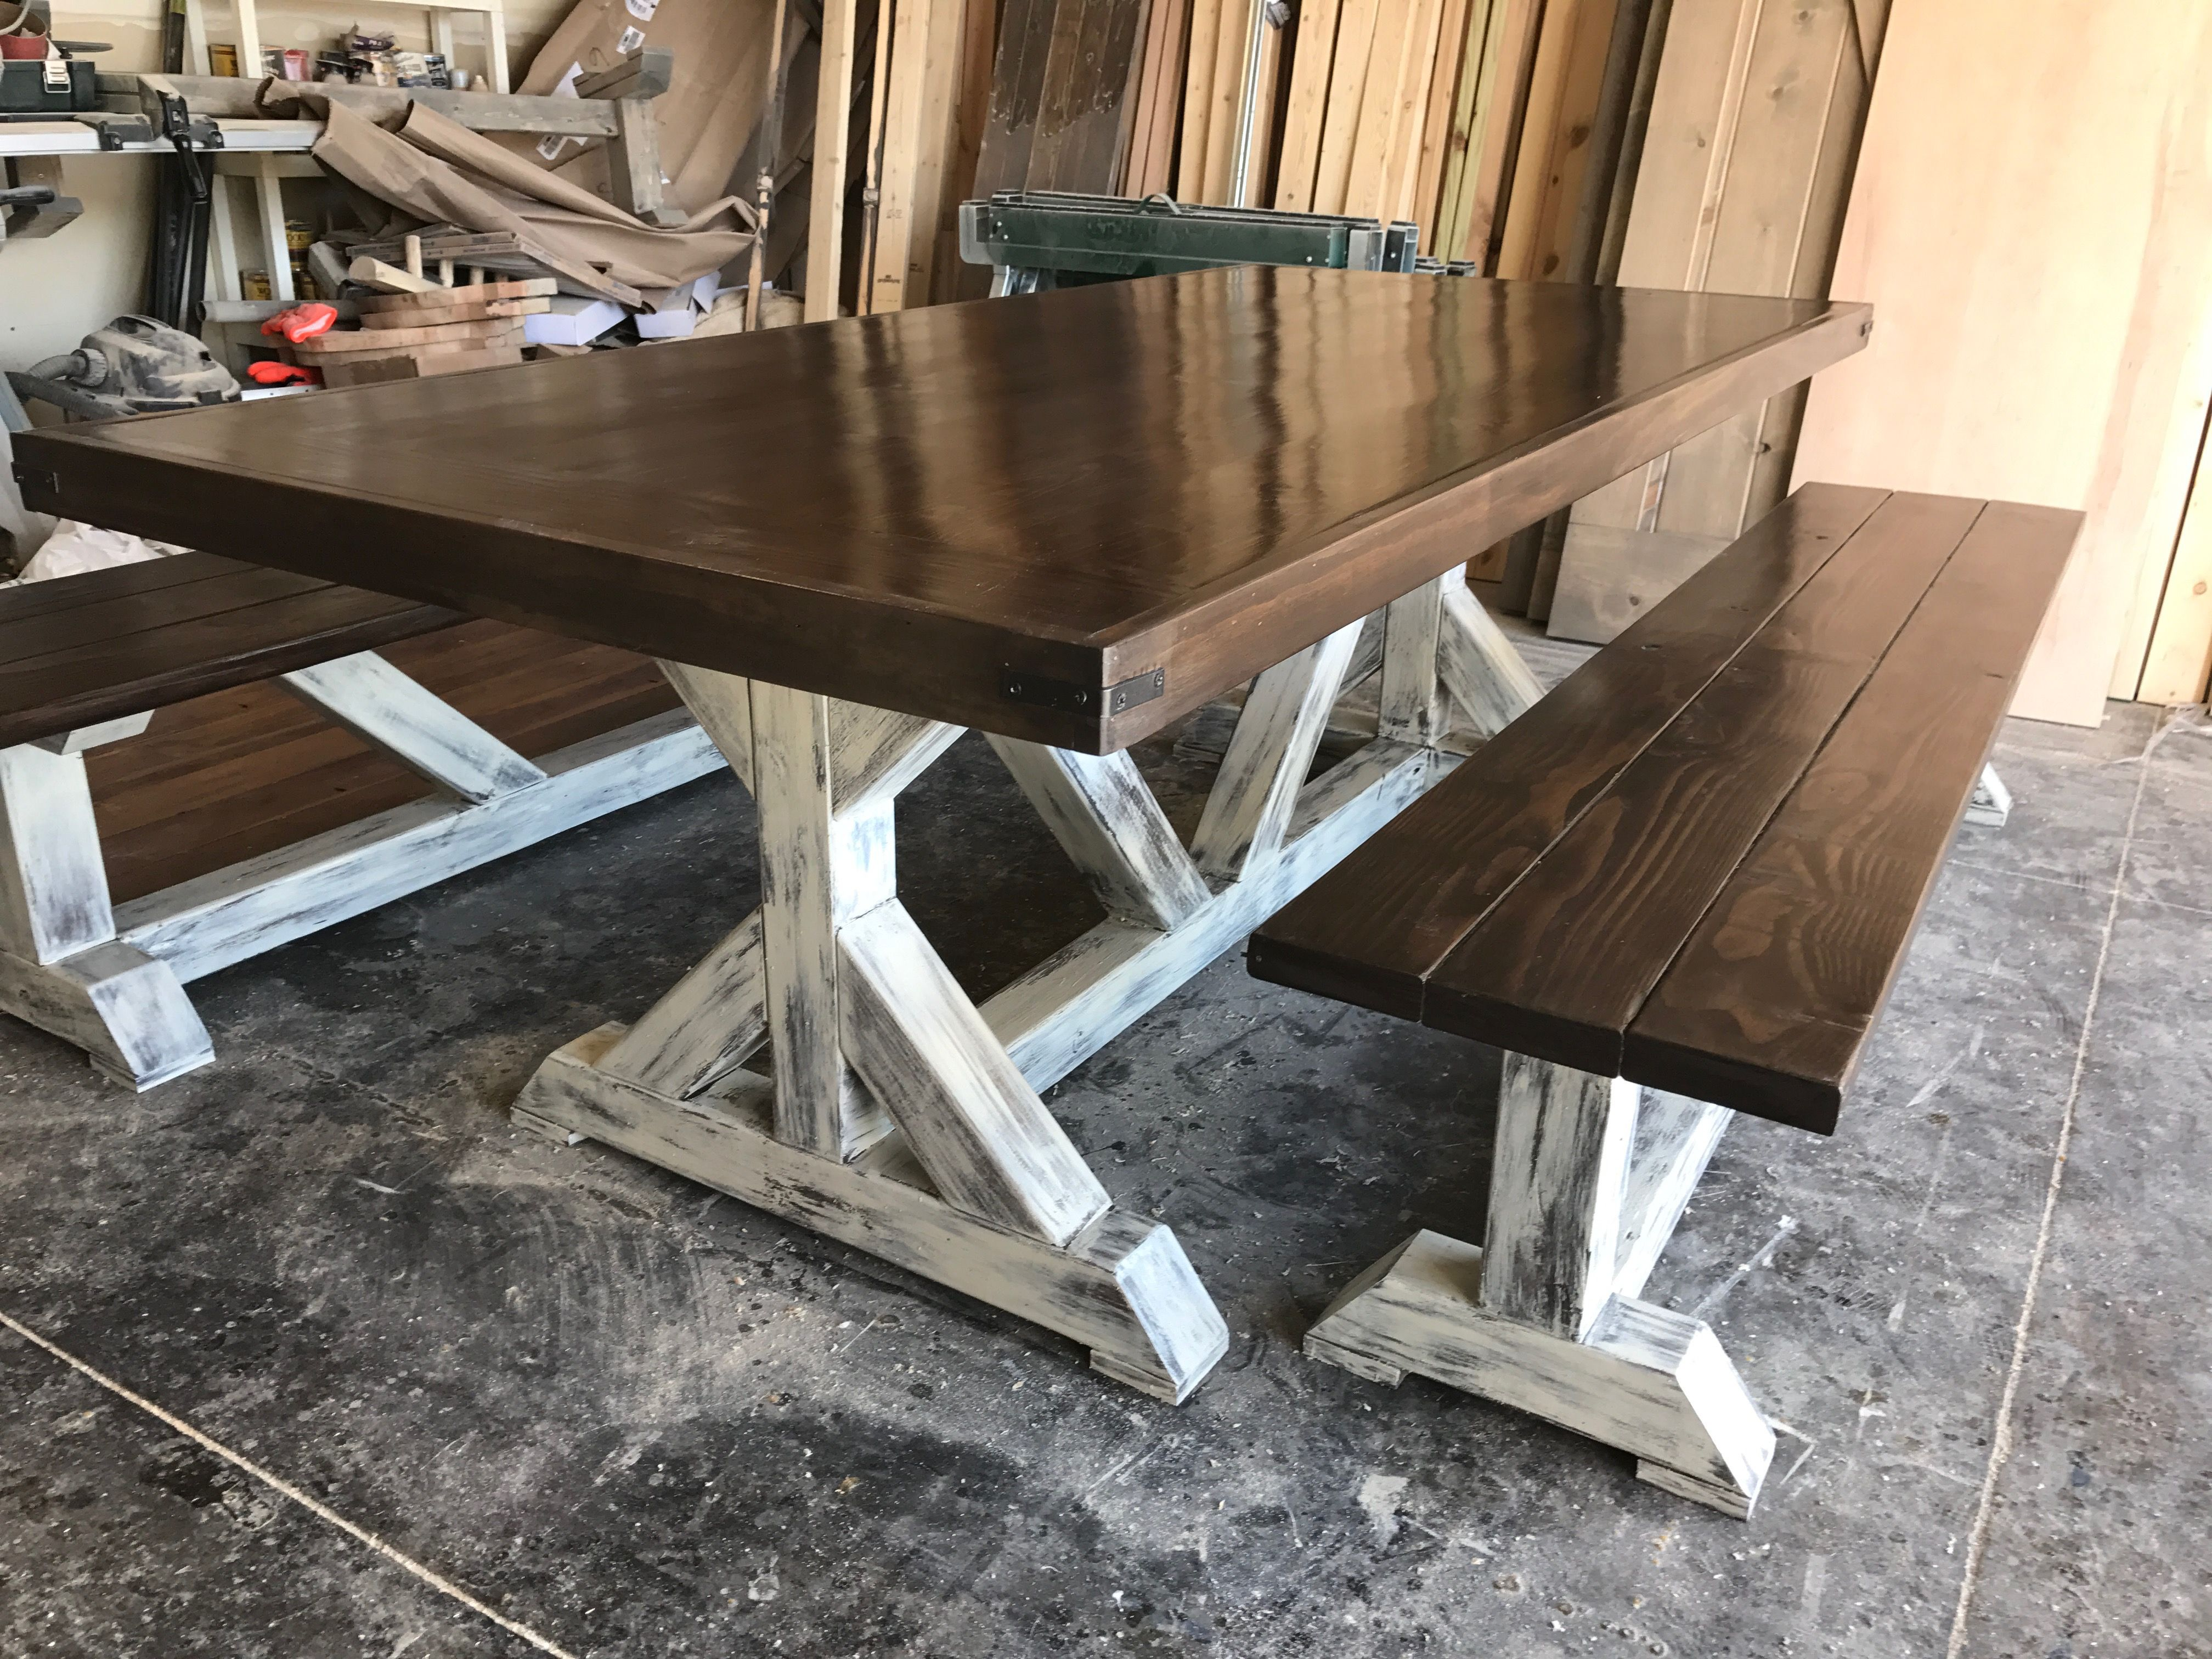 Rustic farm table with white cream washed legs and metal